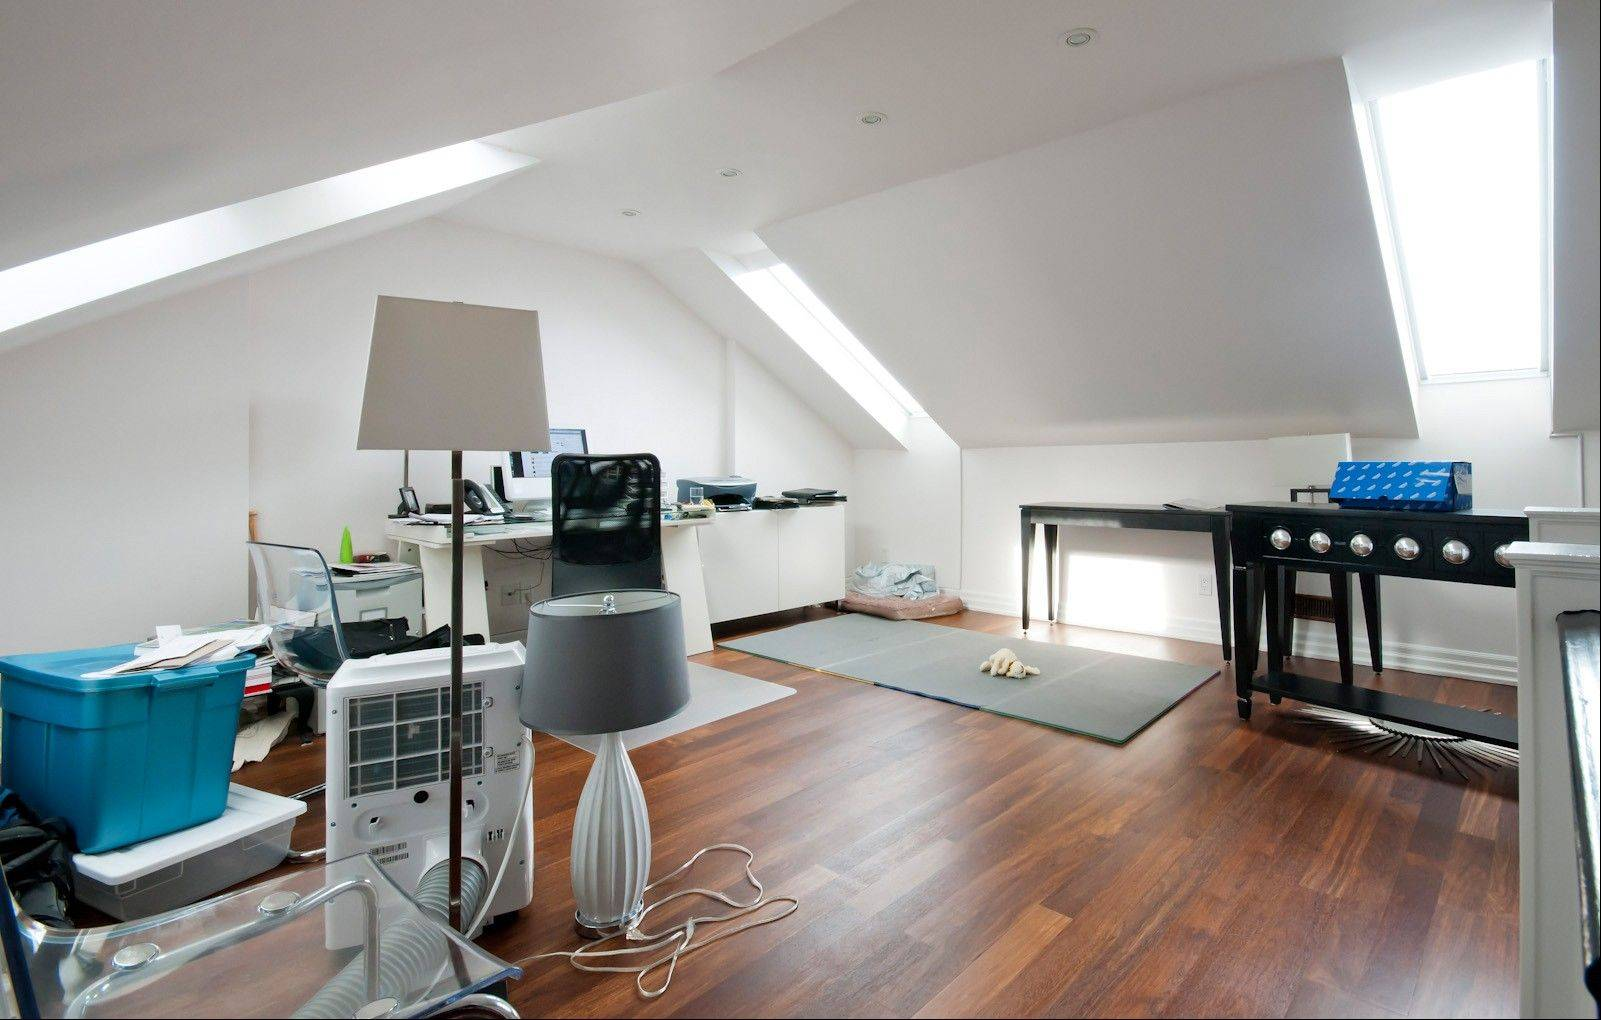 Before its conversion, this attic was roomy and filled with natural light. However, the problem was how to make the most of the possibilities presented by the space.